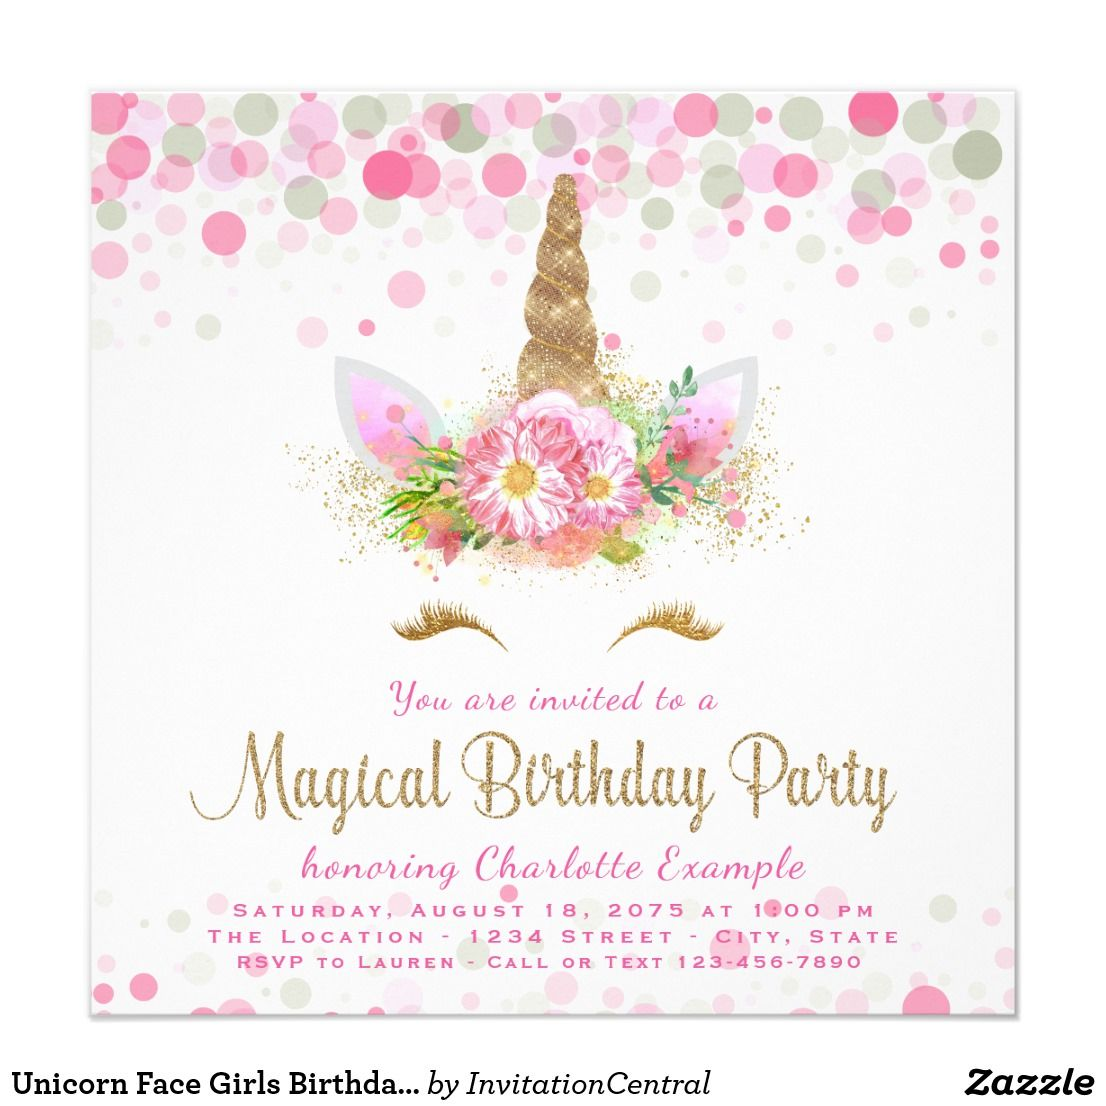 Unicorn Face Girls Birthday Party Invitations Unicorn Face Party